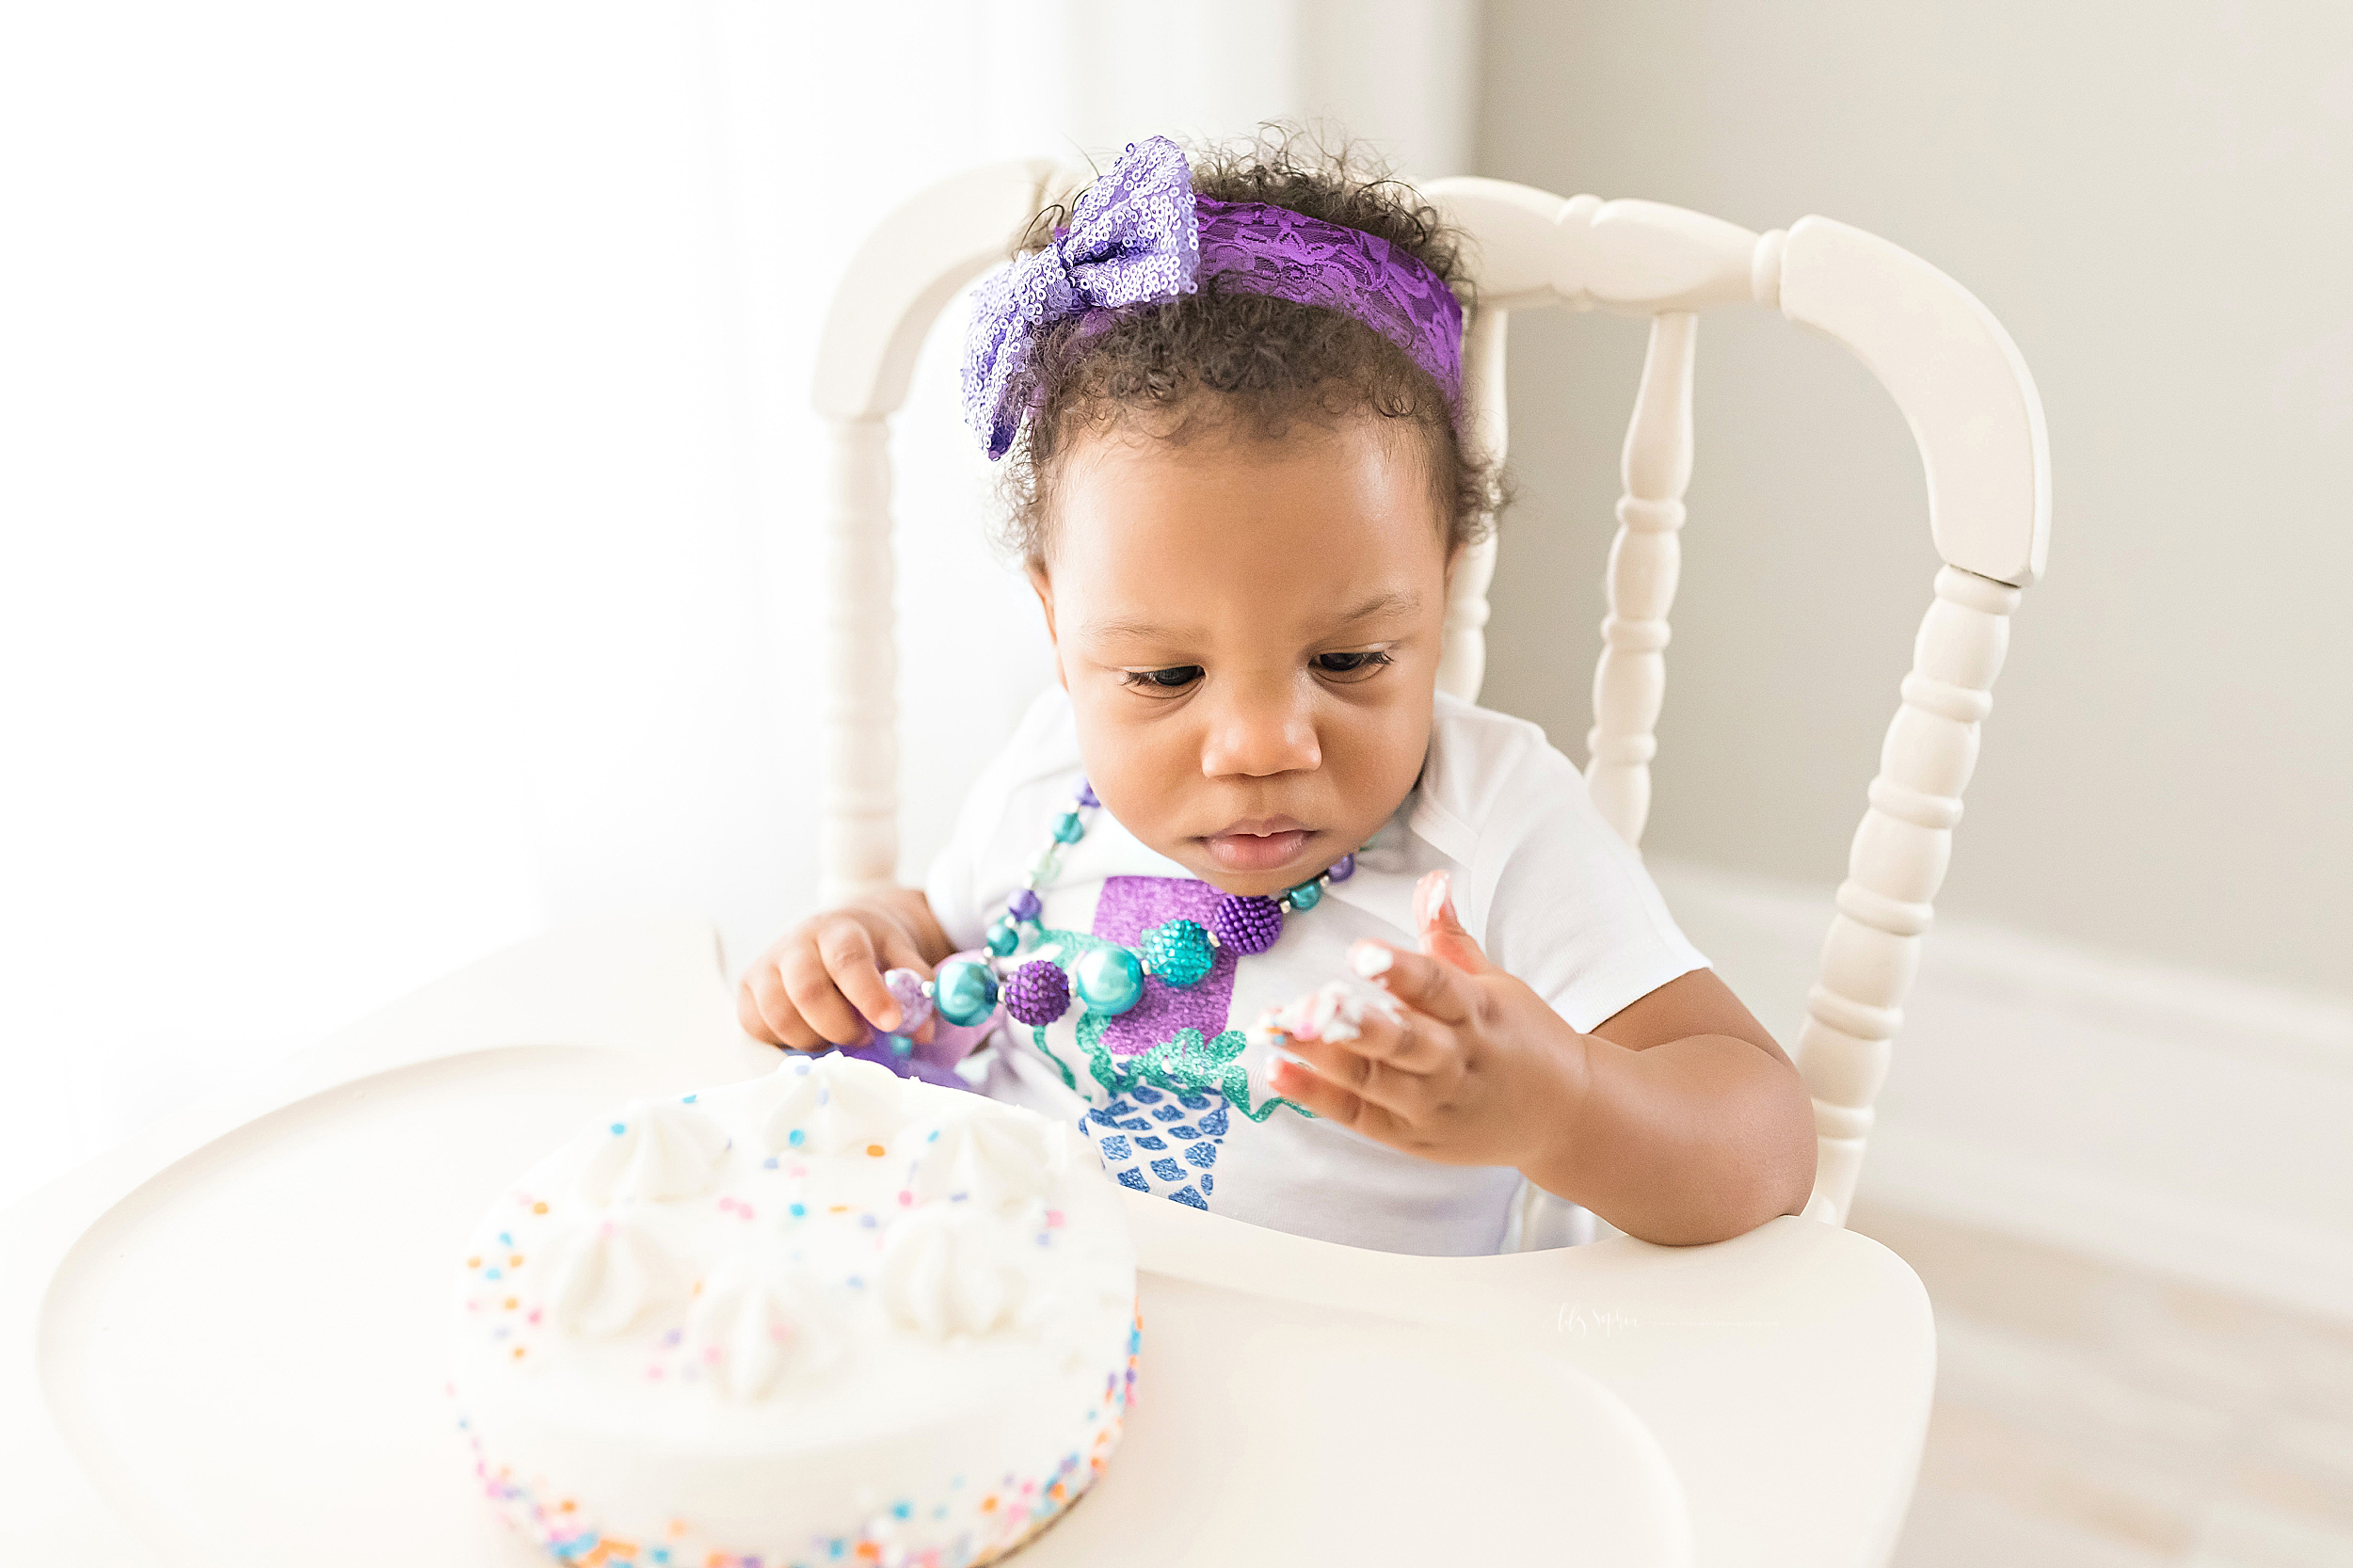 atlanta-buckhead-brookhaven-decatur-lily-sophia-photography--photographer-portraits-grant-park-intown-first-birthday-tutu-cake-smash_0996.jpg